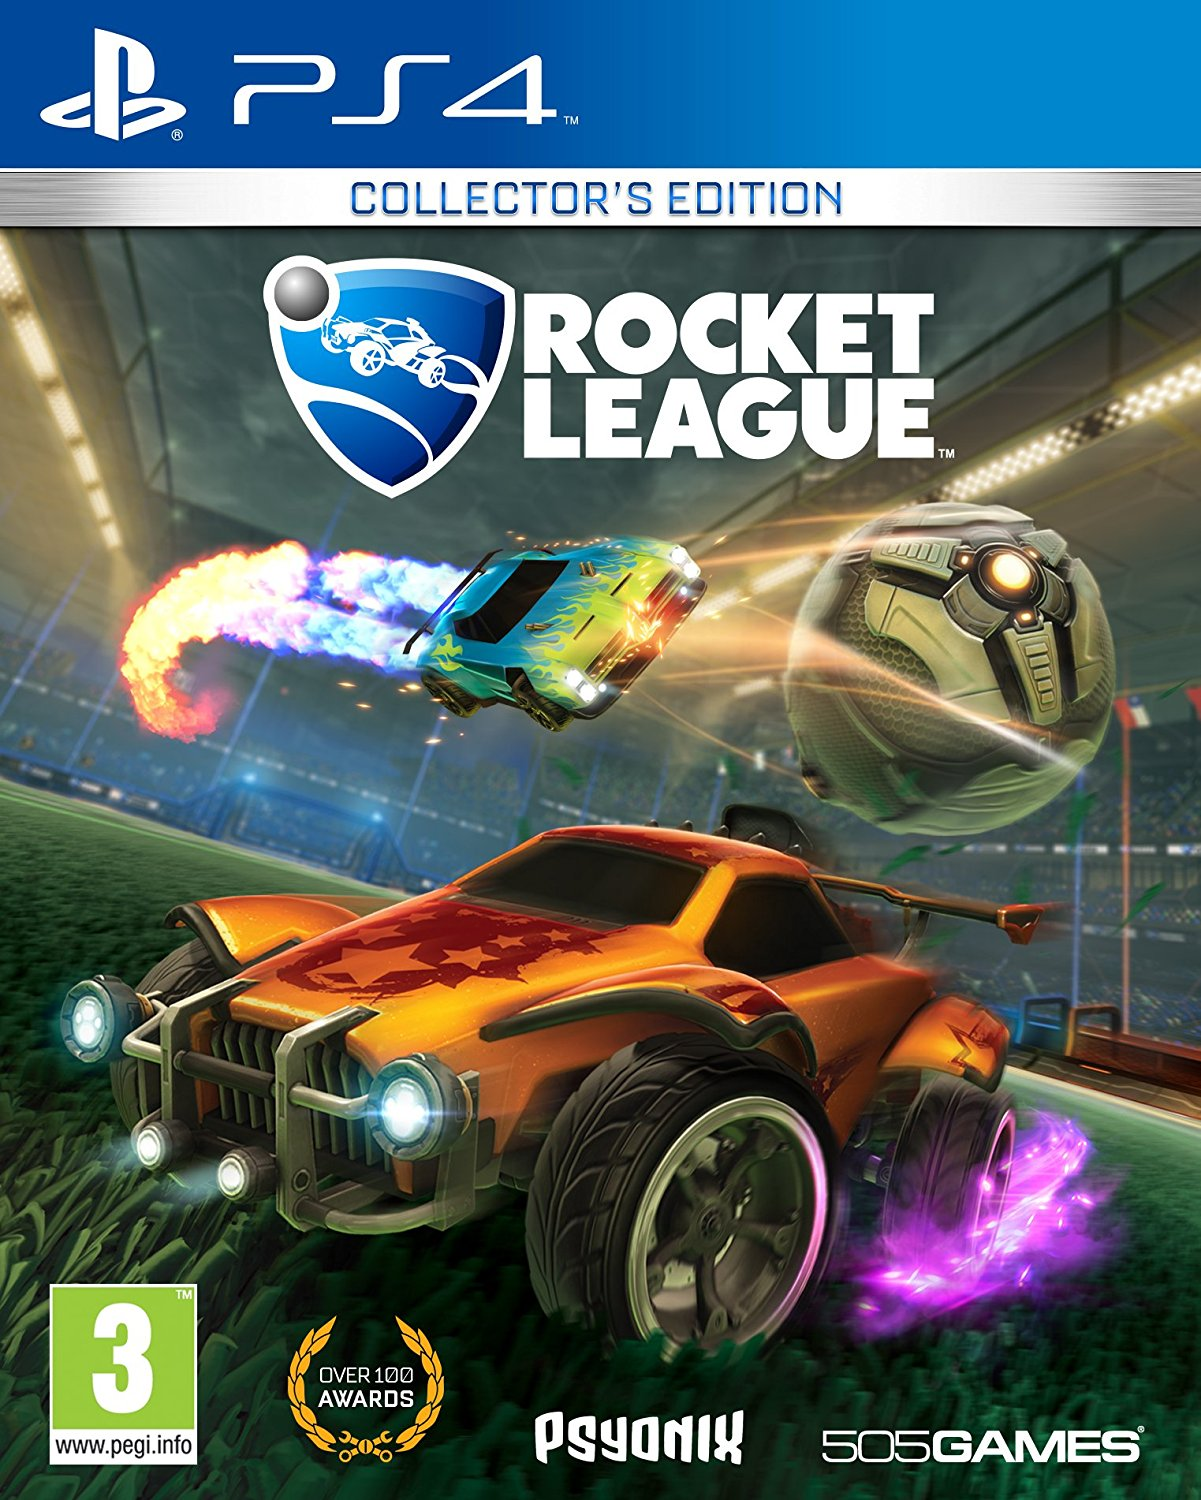 PS4 - ROCKET LEAGUE COLLECTOR'S EDITION